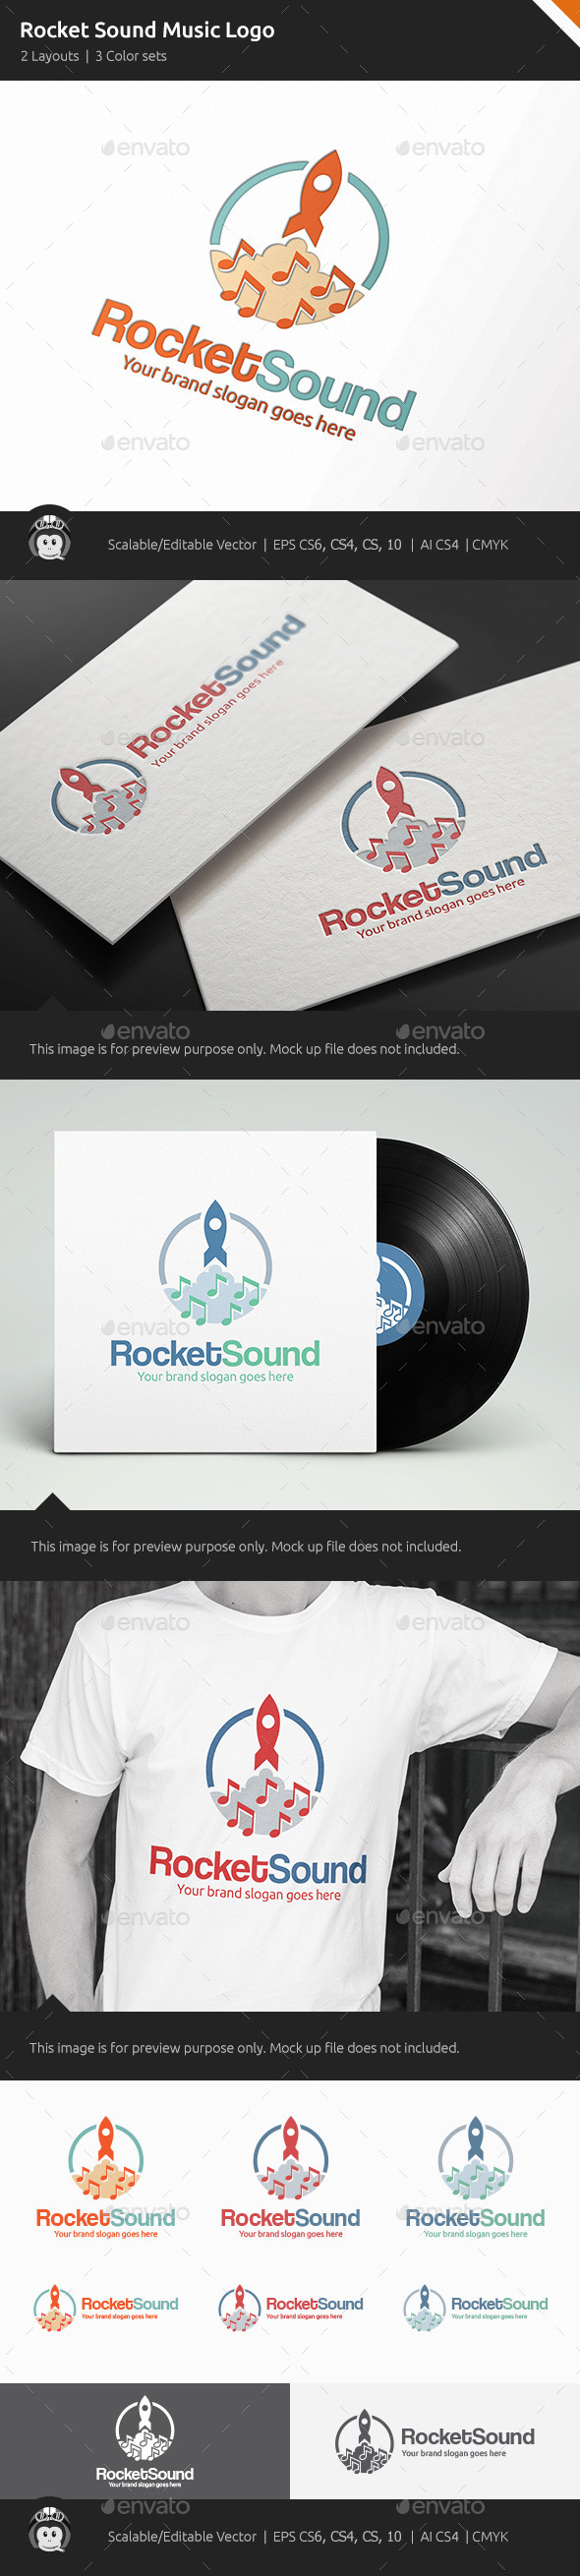 GraphicRiver Rocket Sound Music Logo 11094327